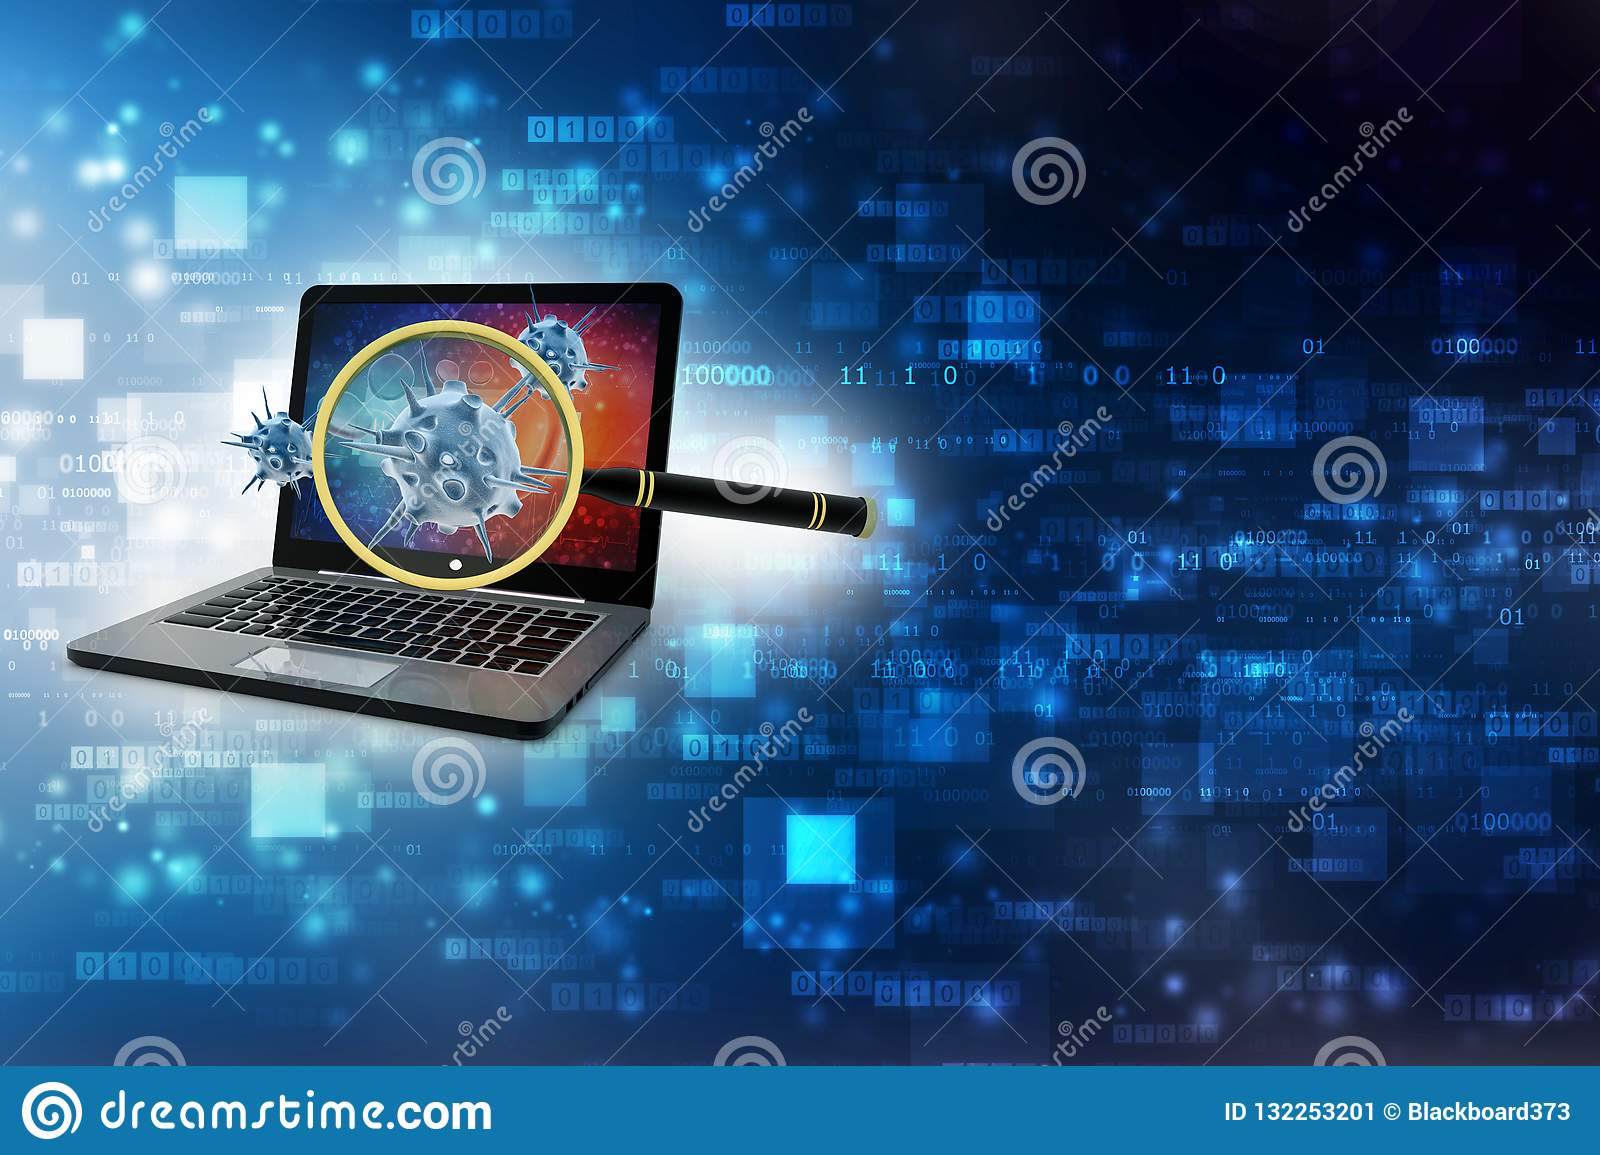 Virus Detection, Magnifying Glass Scanning Virus With